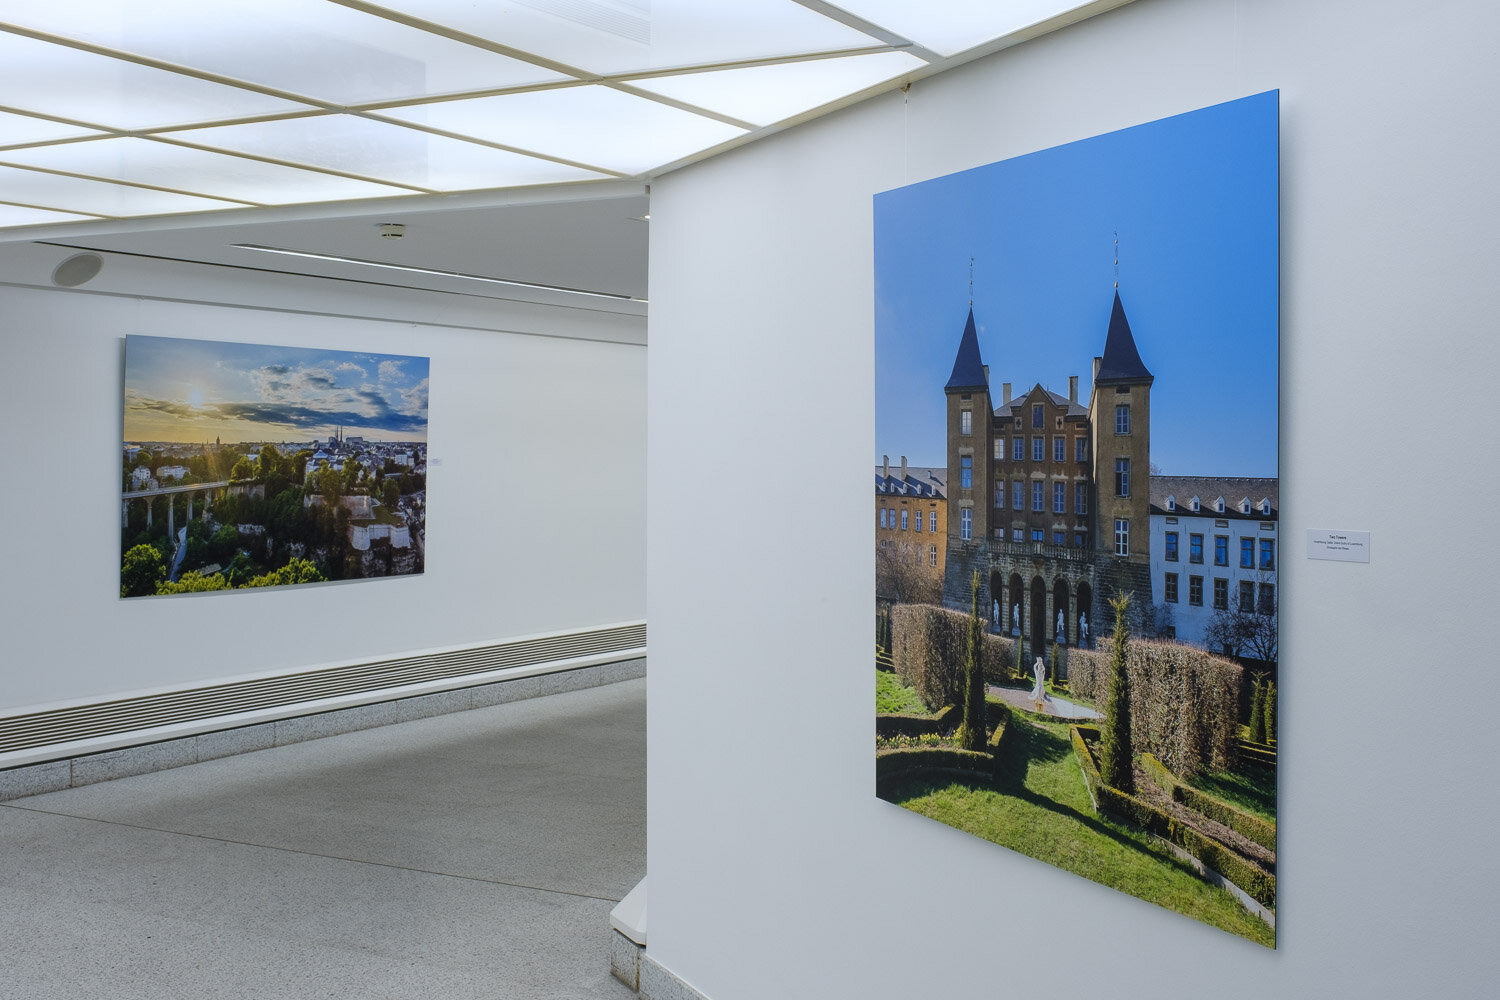 Landscape photography exhibition at the Contemporary Art Gallery Am Tunnel in Luxembourg City - Home and Away - Landscapes by Christophe Van Biesen - The exhibition in pictures